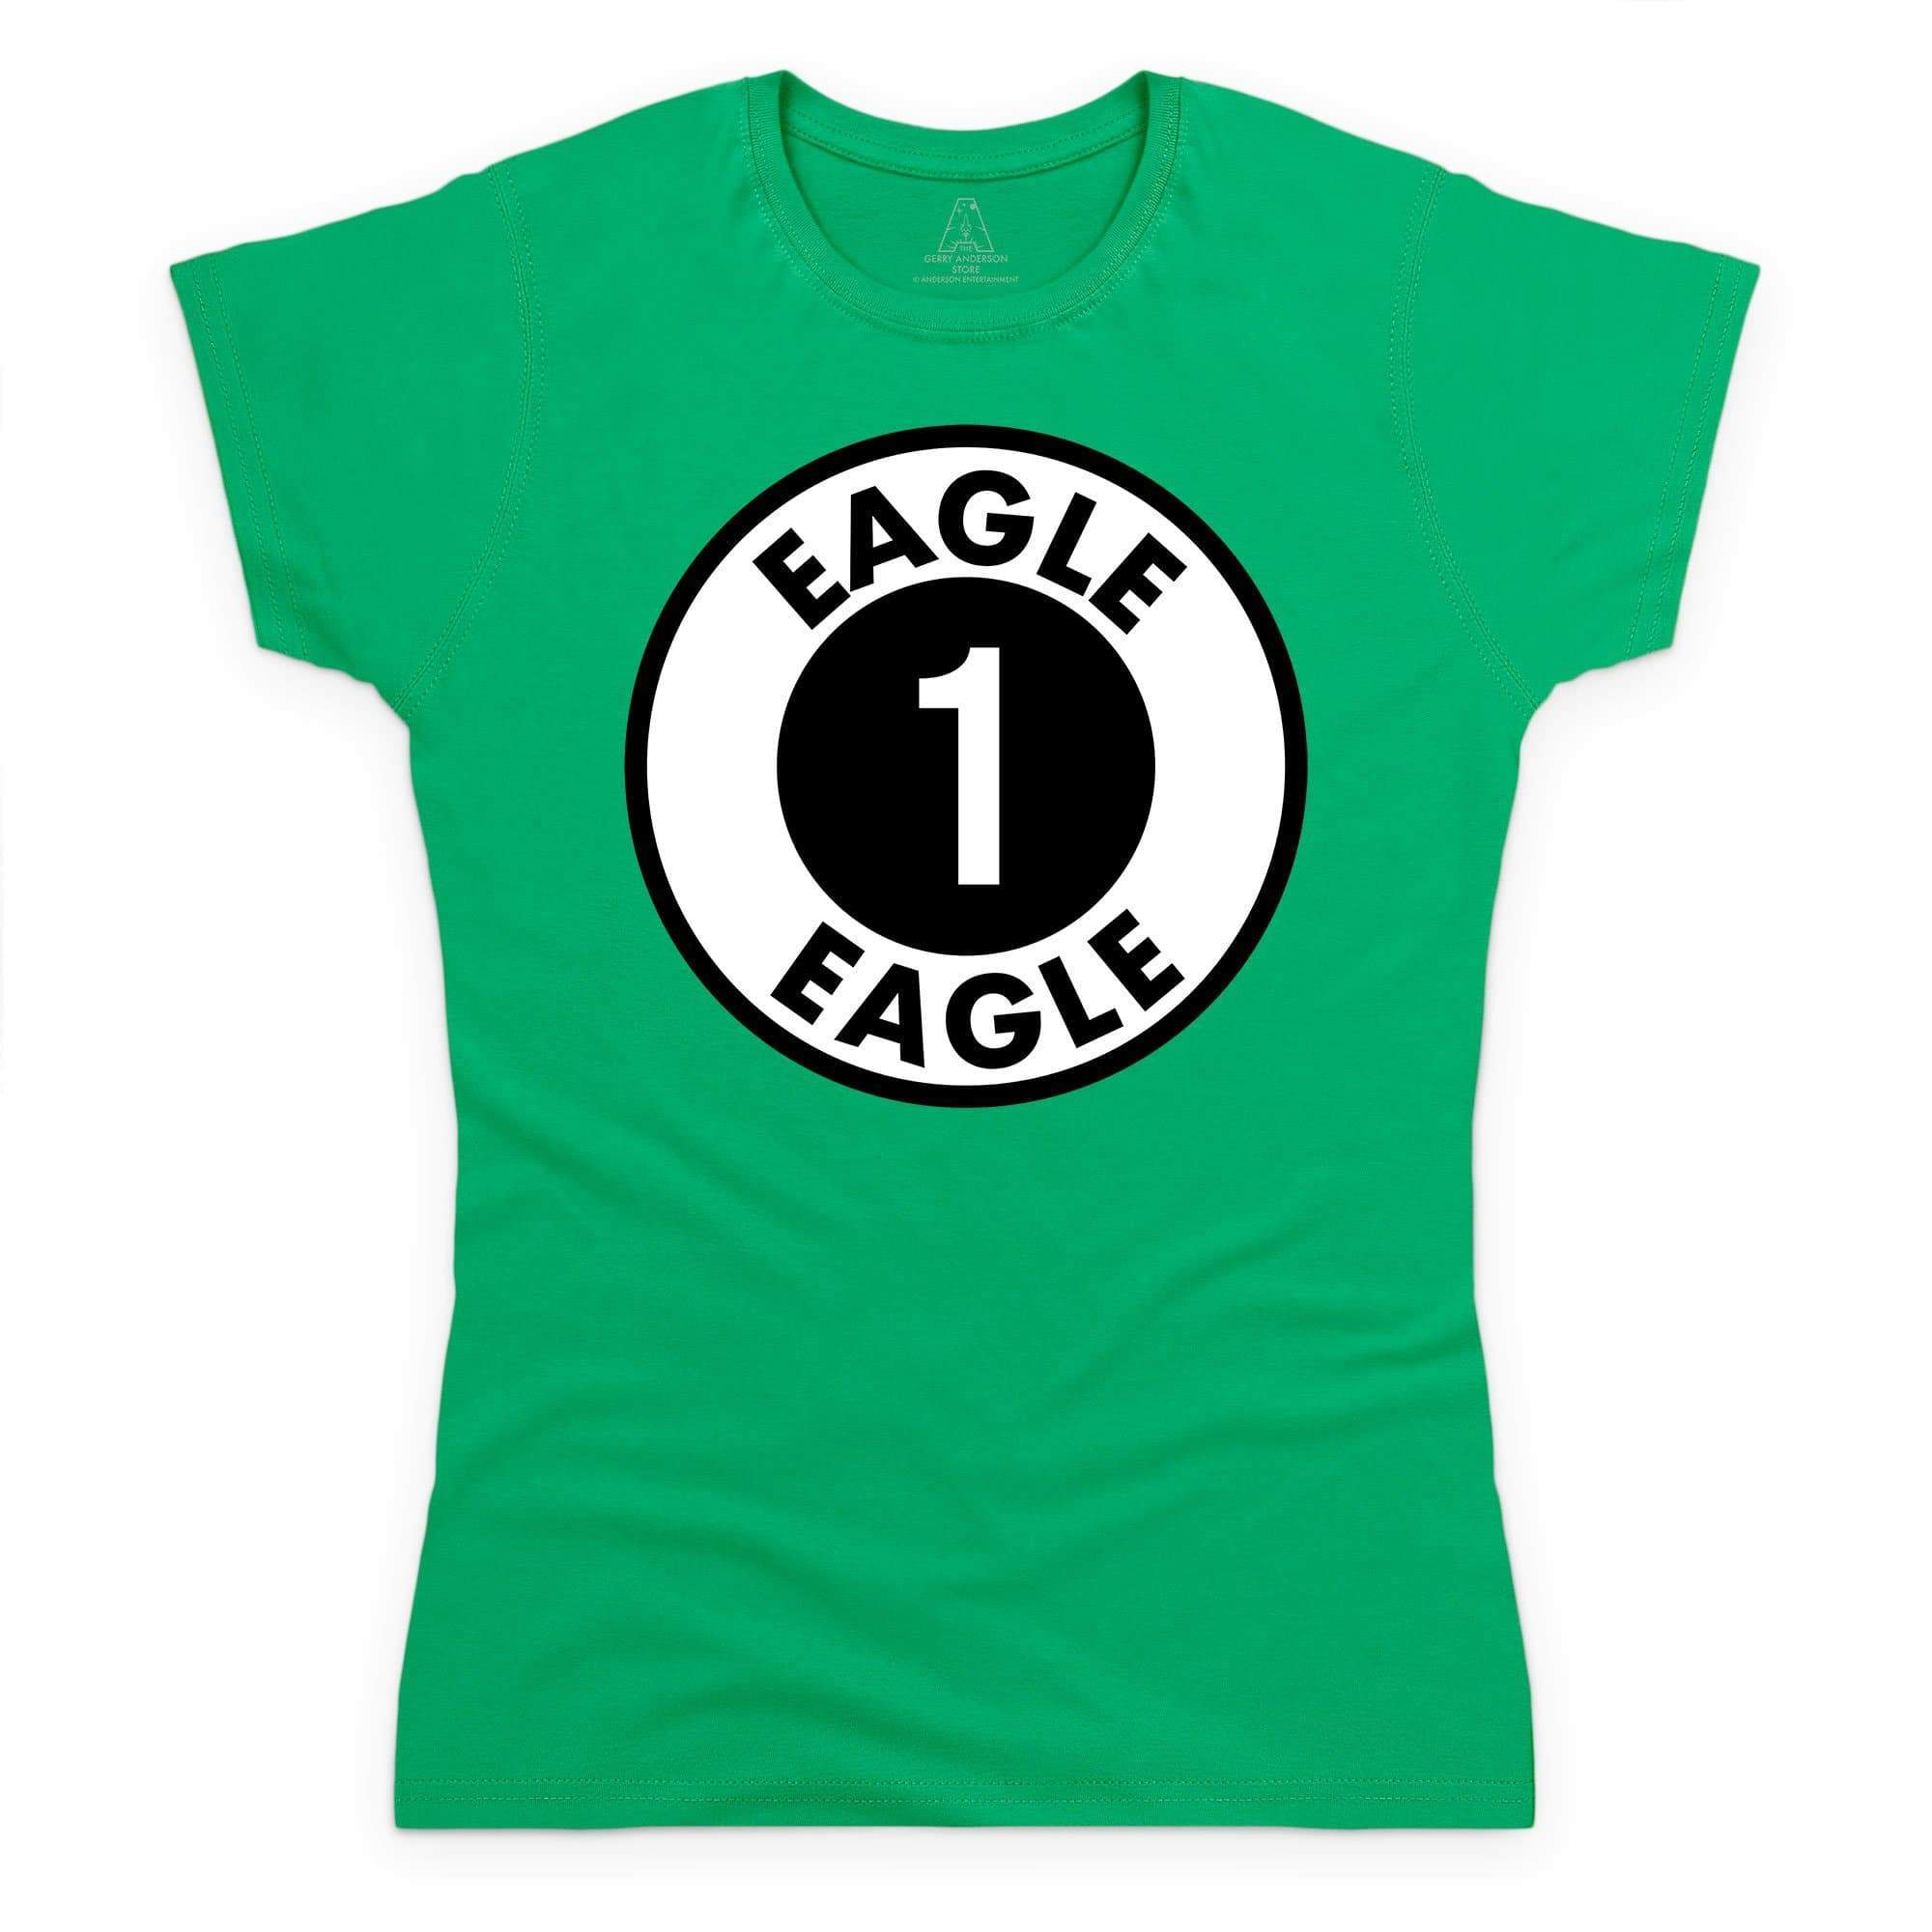 Eagle One Logo Women's T-shirt - The Gerry Anderson Store